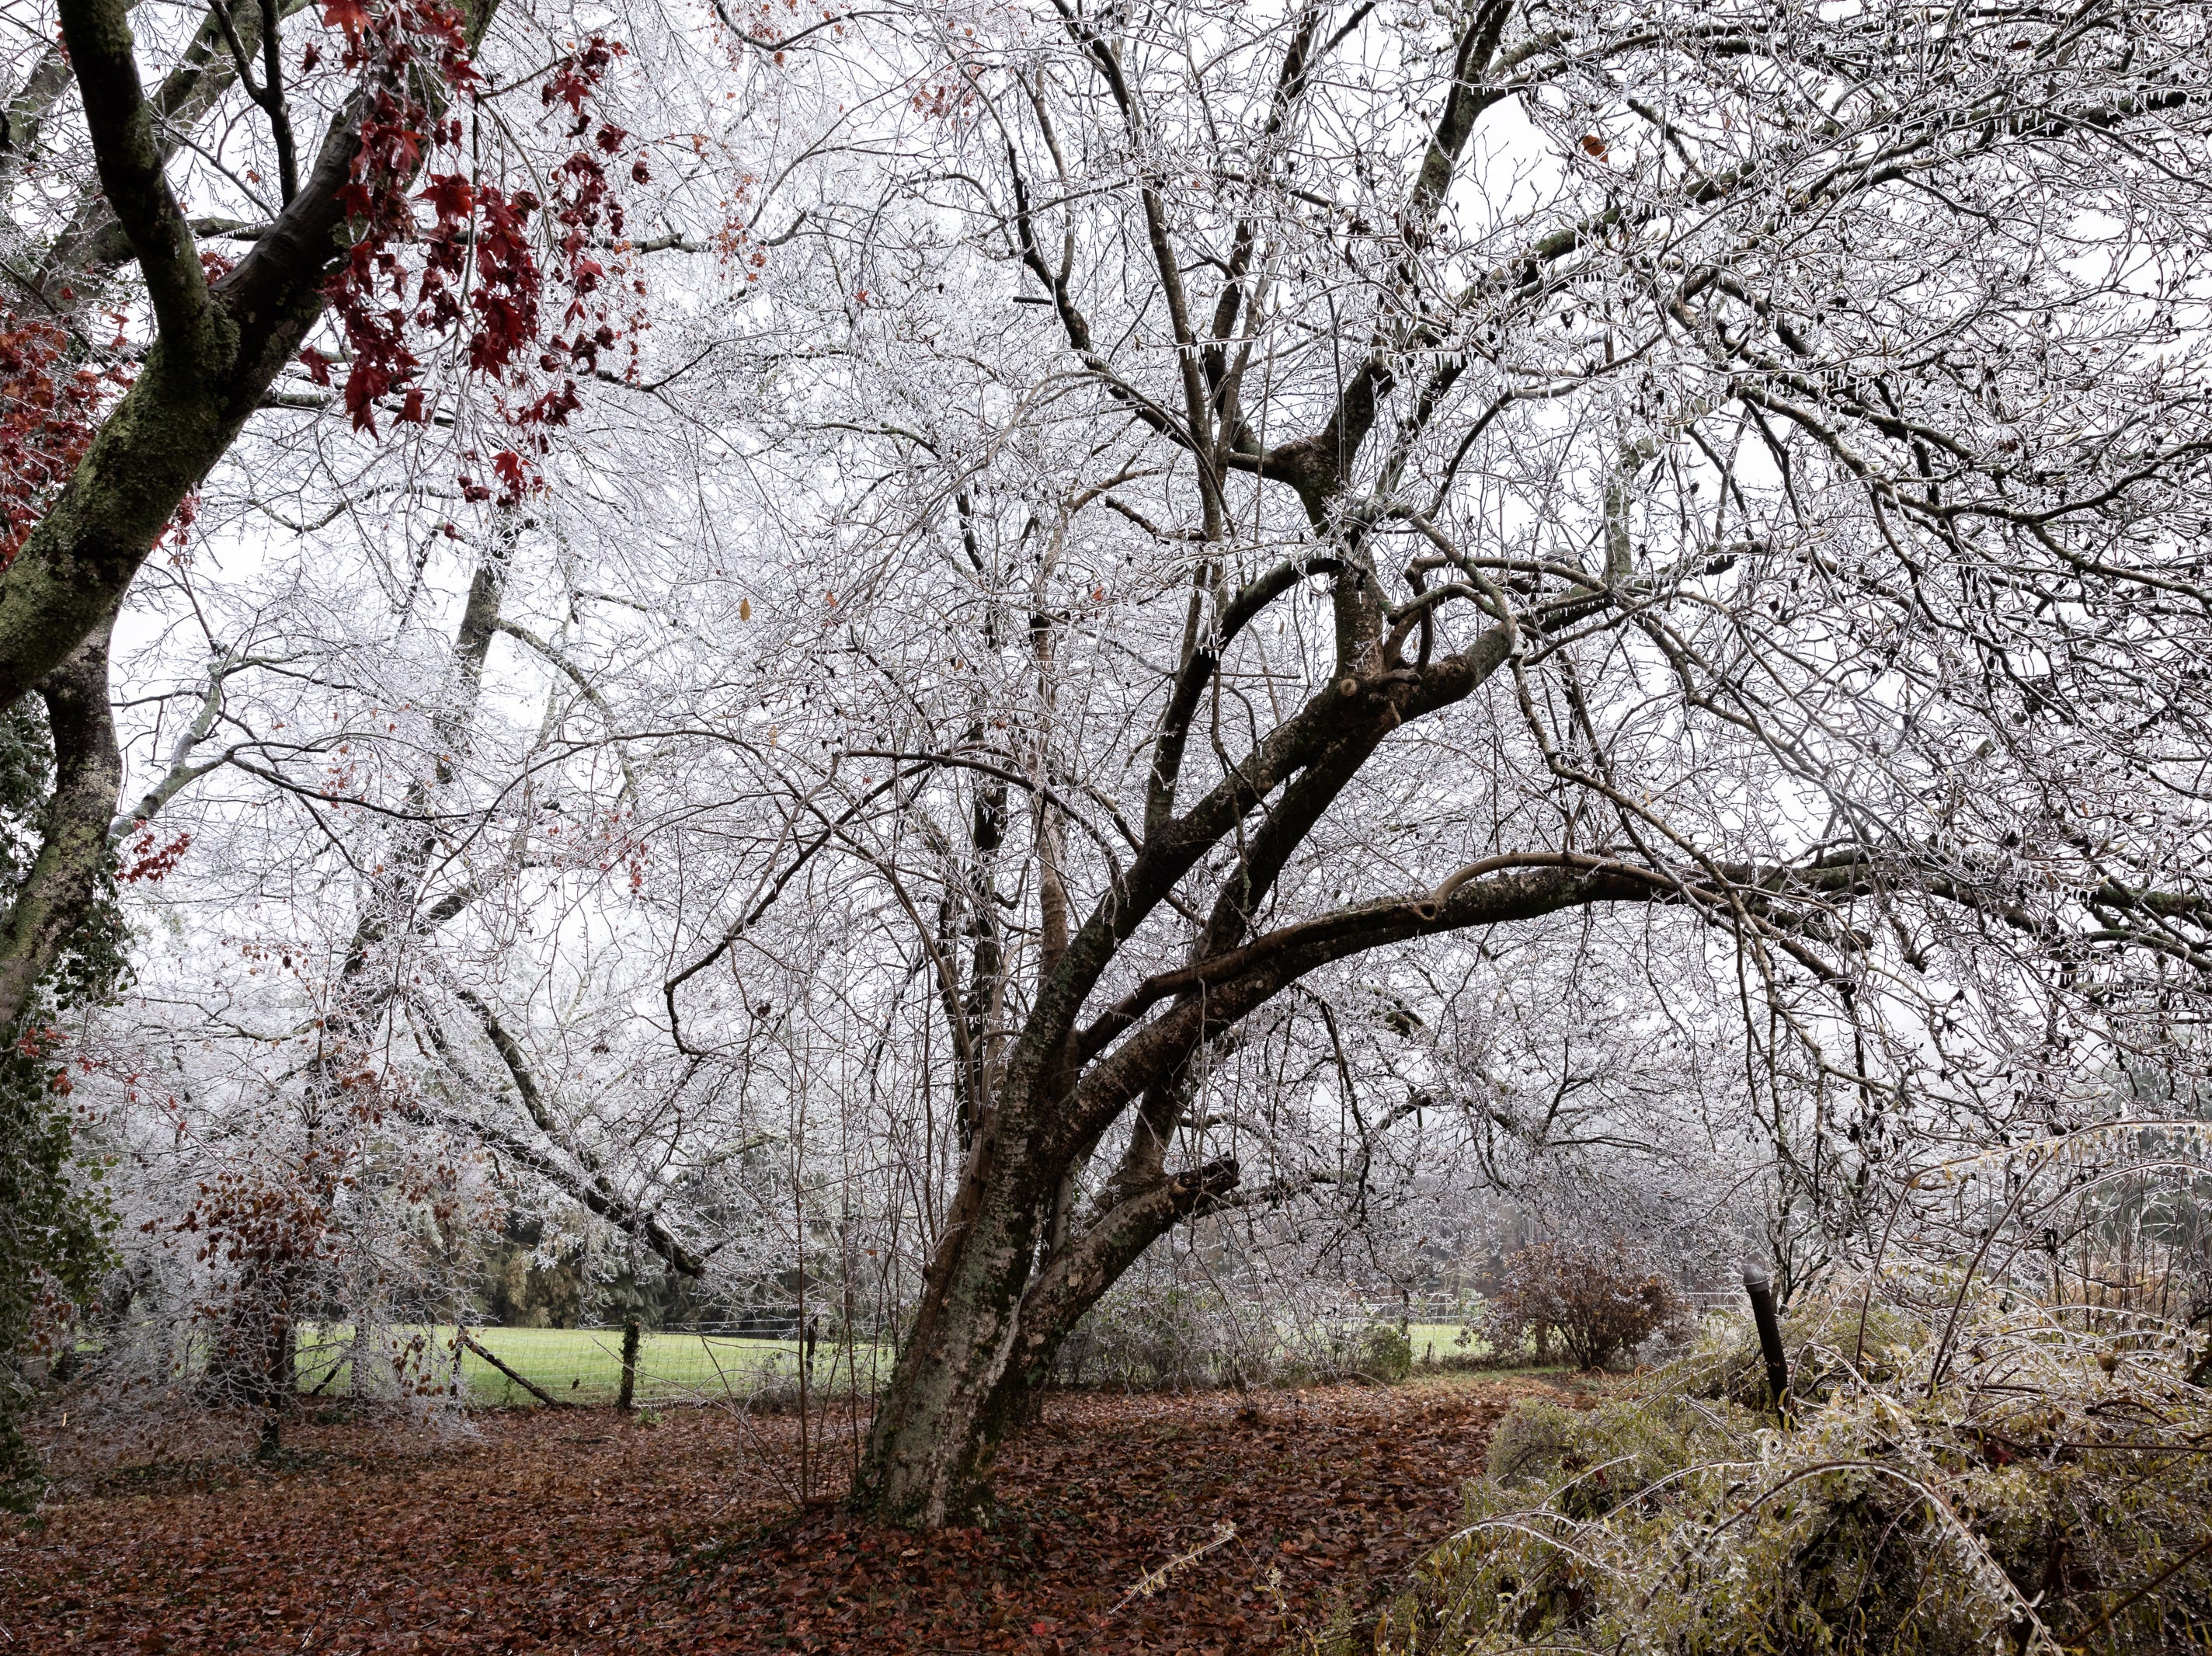 Ice covers the branches of trees at the Carl Sandburg home in Flat Rock where the park celebrated its 50th anniversary Nov. 24, 2018, with their Christmas at Connemara event featuring live music, storytellers and tours of the home.